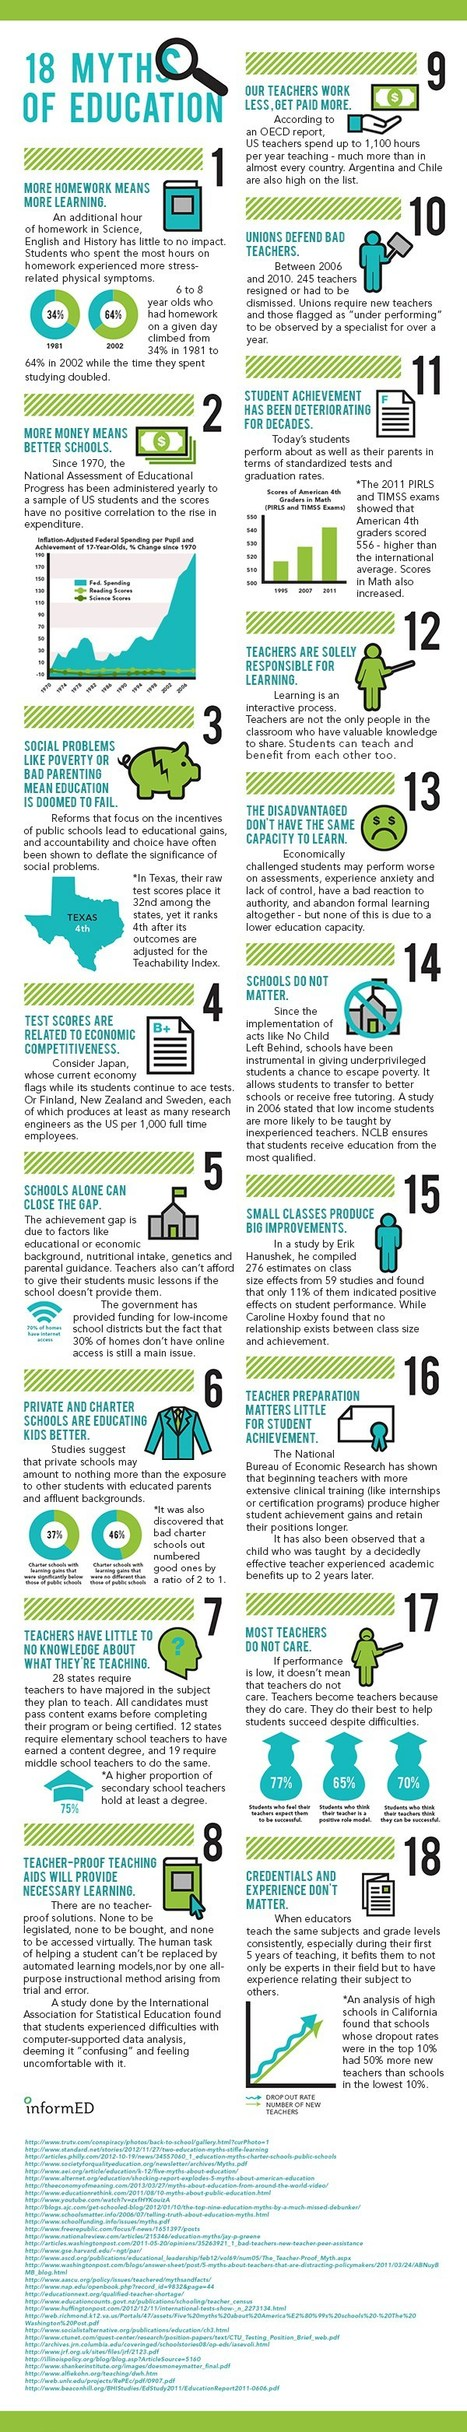 18 Myths of Education #infographic #education #myths | innovation in learning | Scoop.it